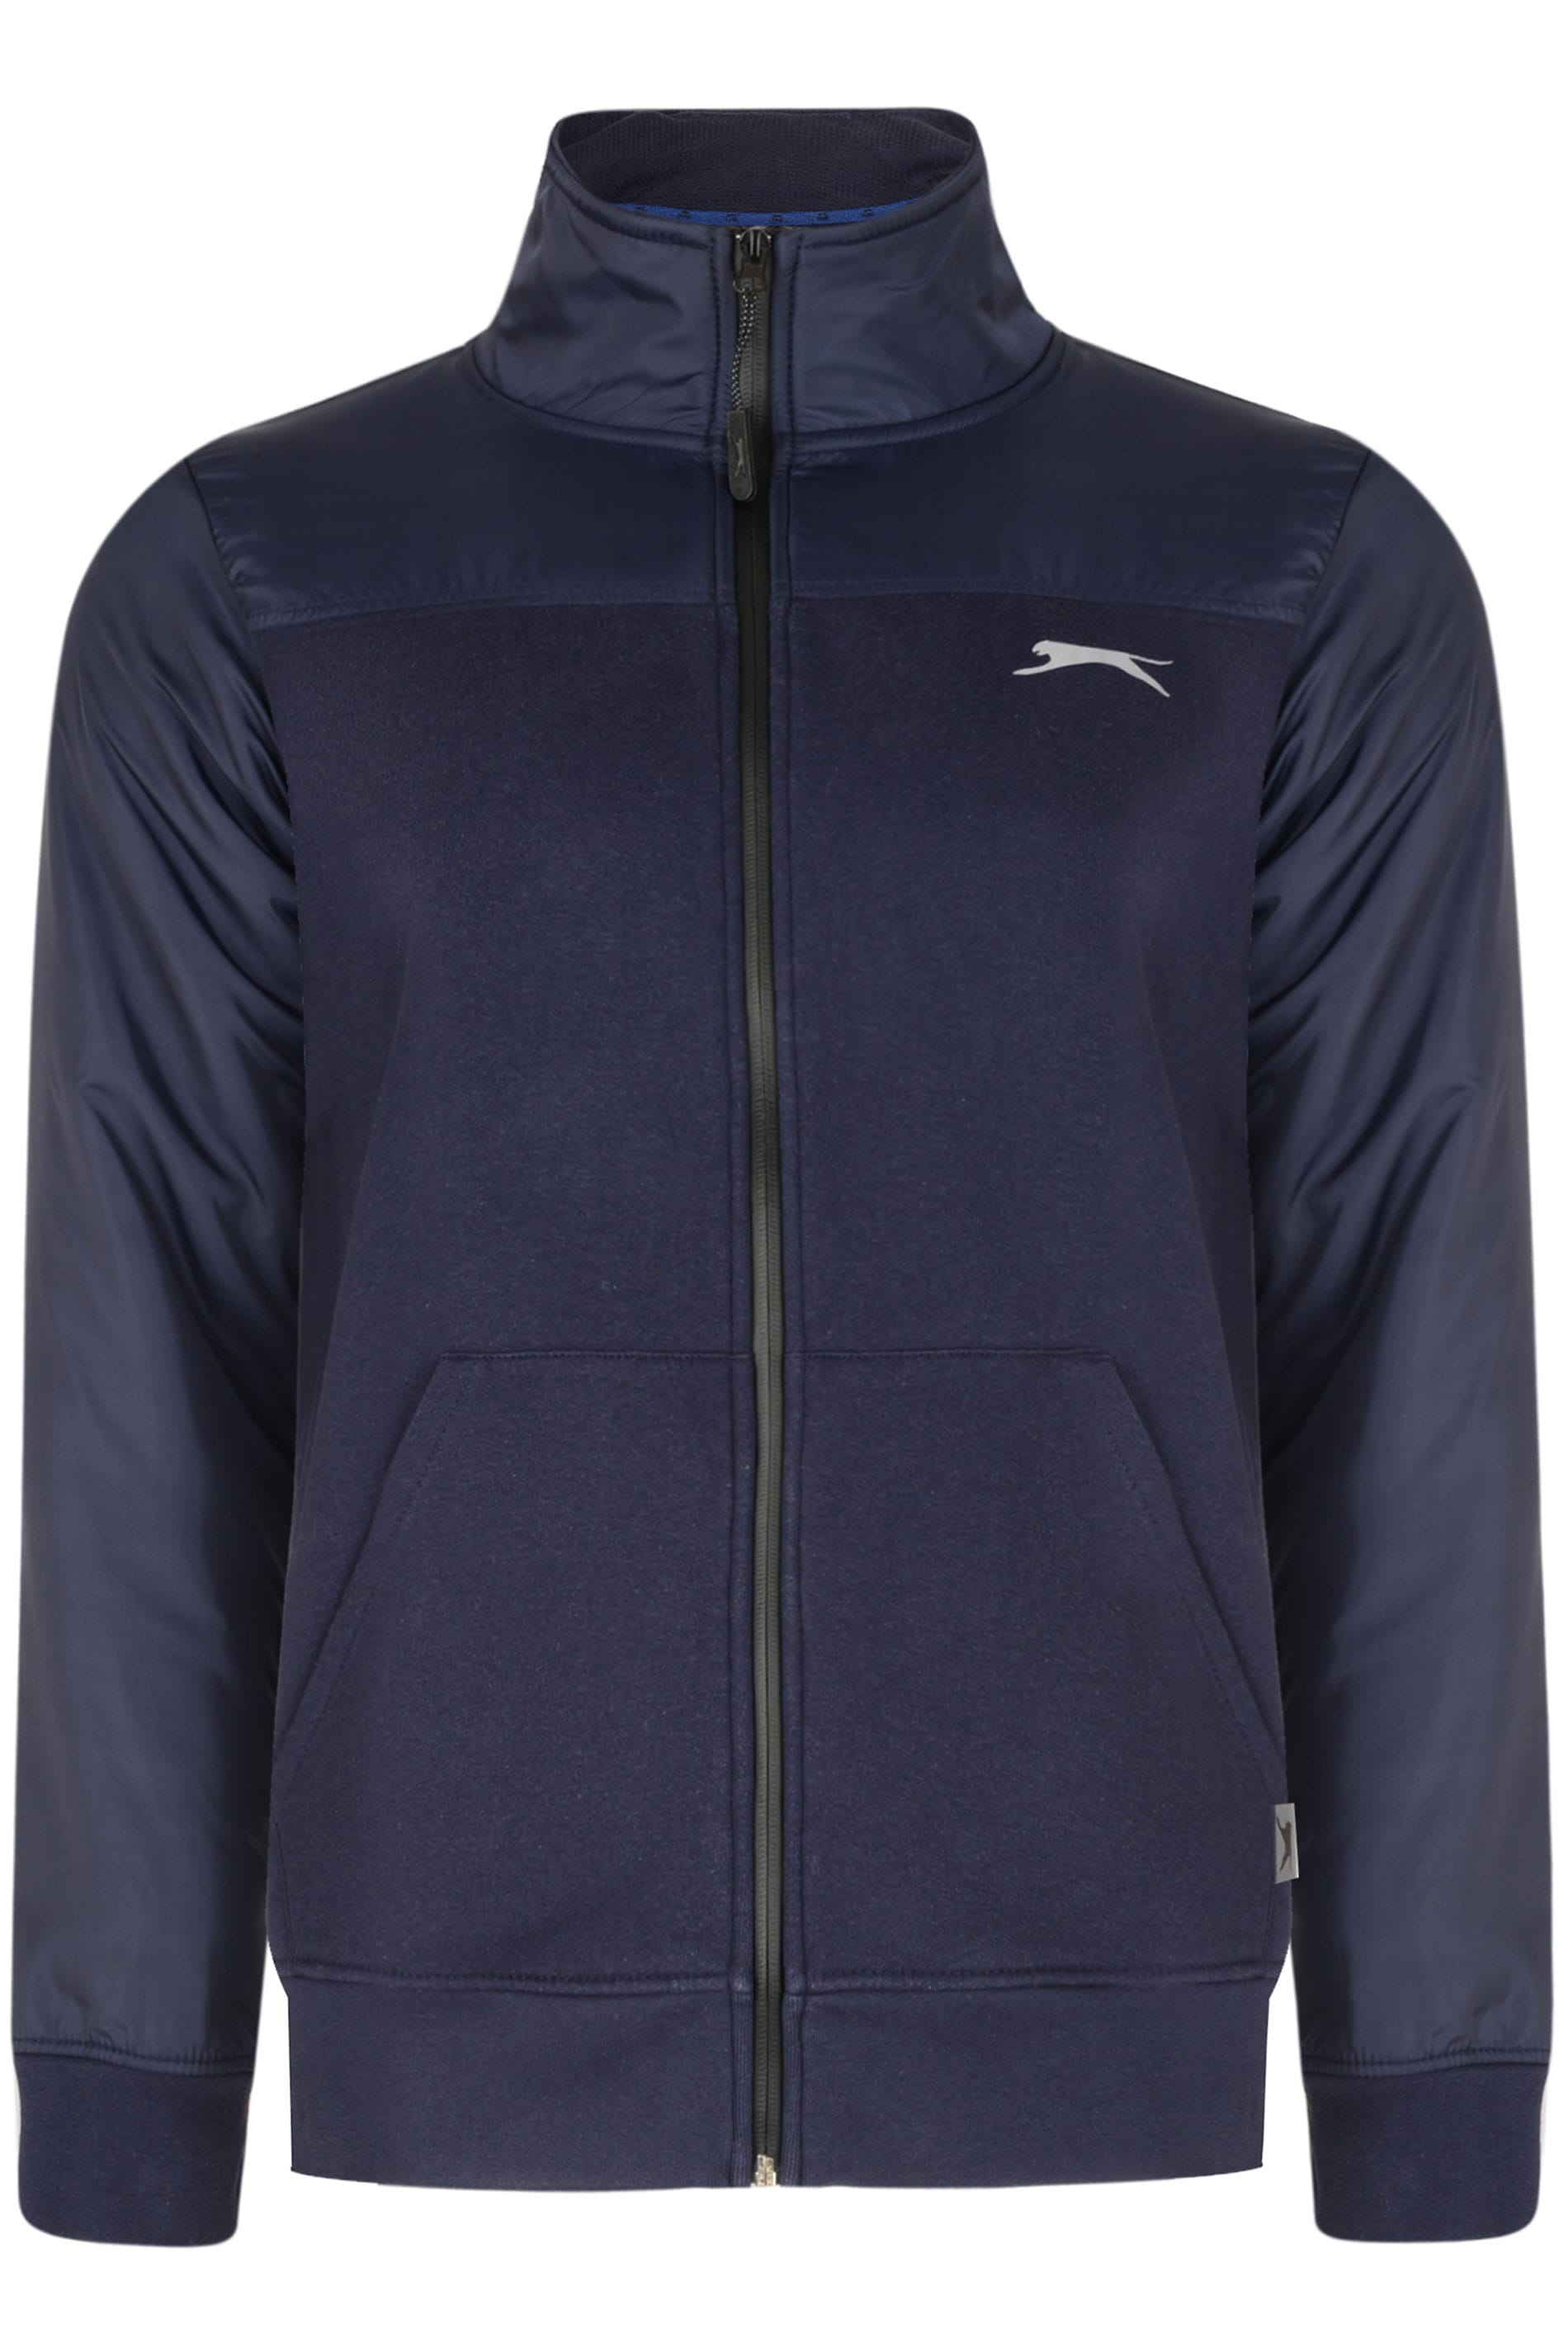 SLAZENGER Navy Panelled Jacket